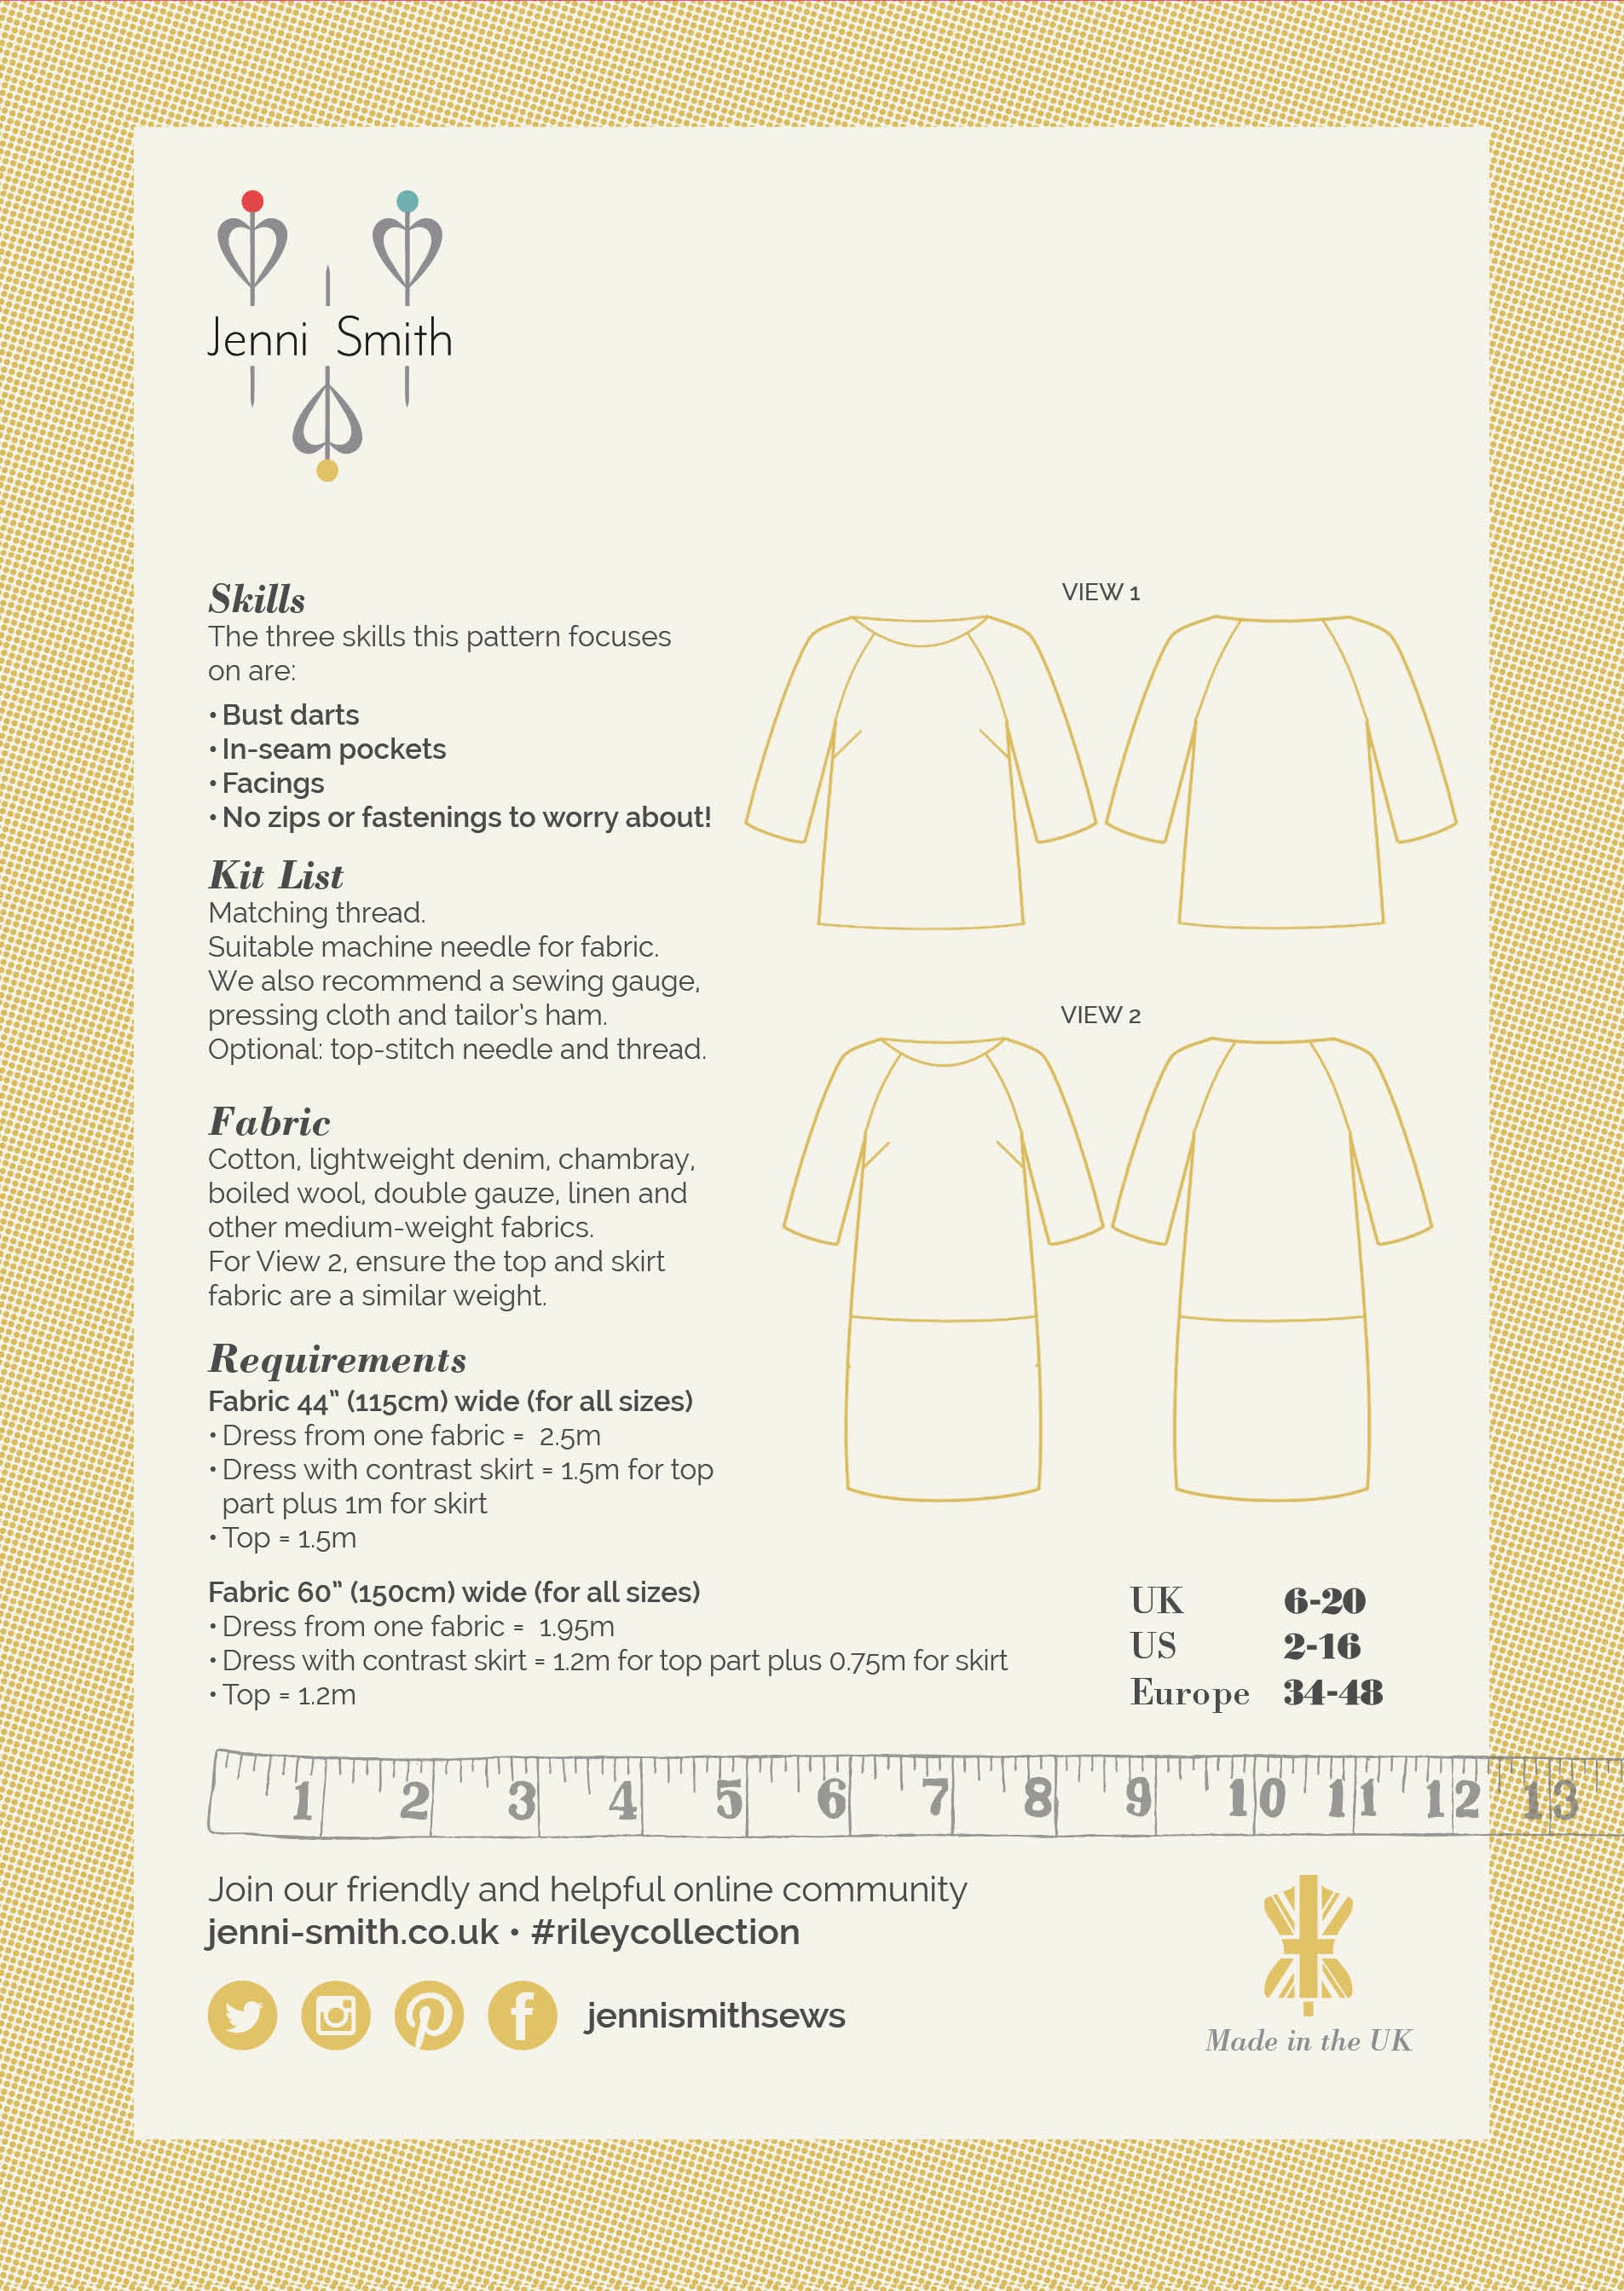 Riley Collection Sewing Pattern PDF - UK Version